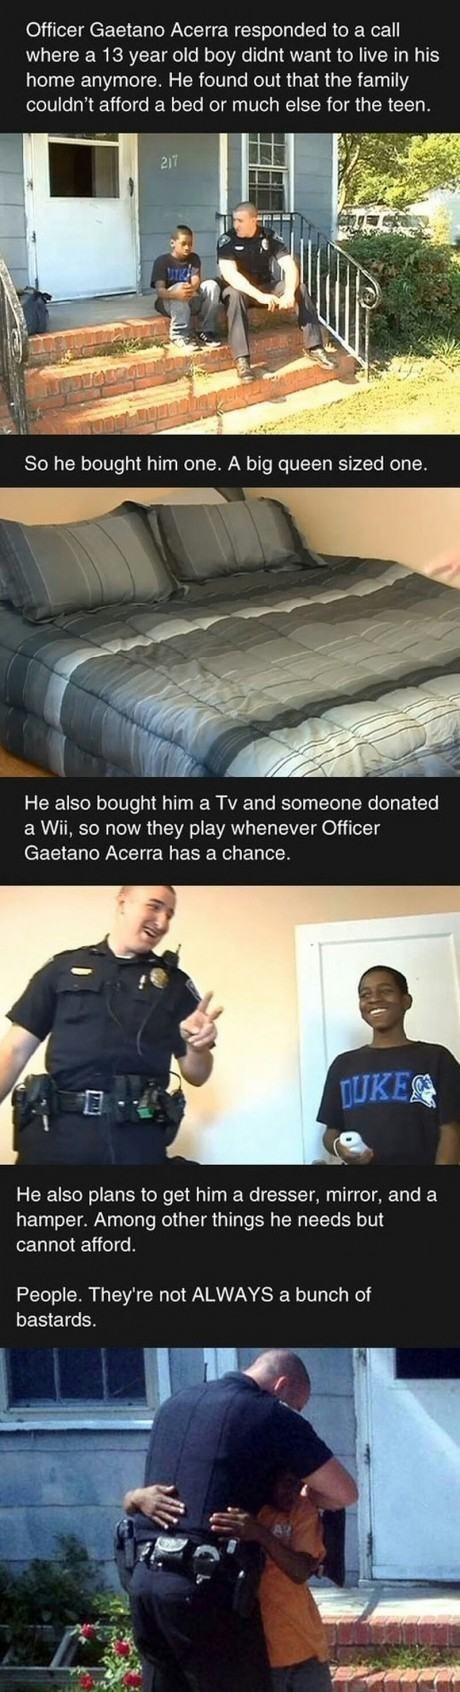 Police Officer Kindness